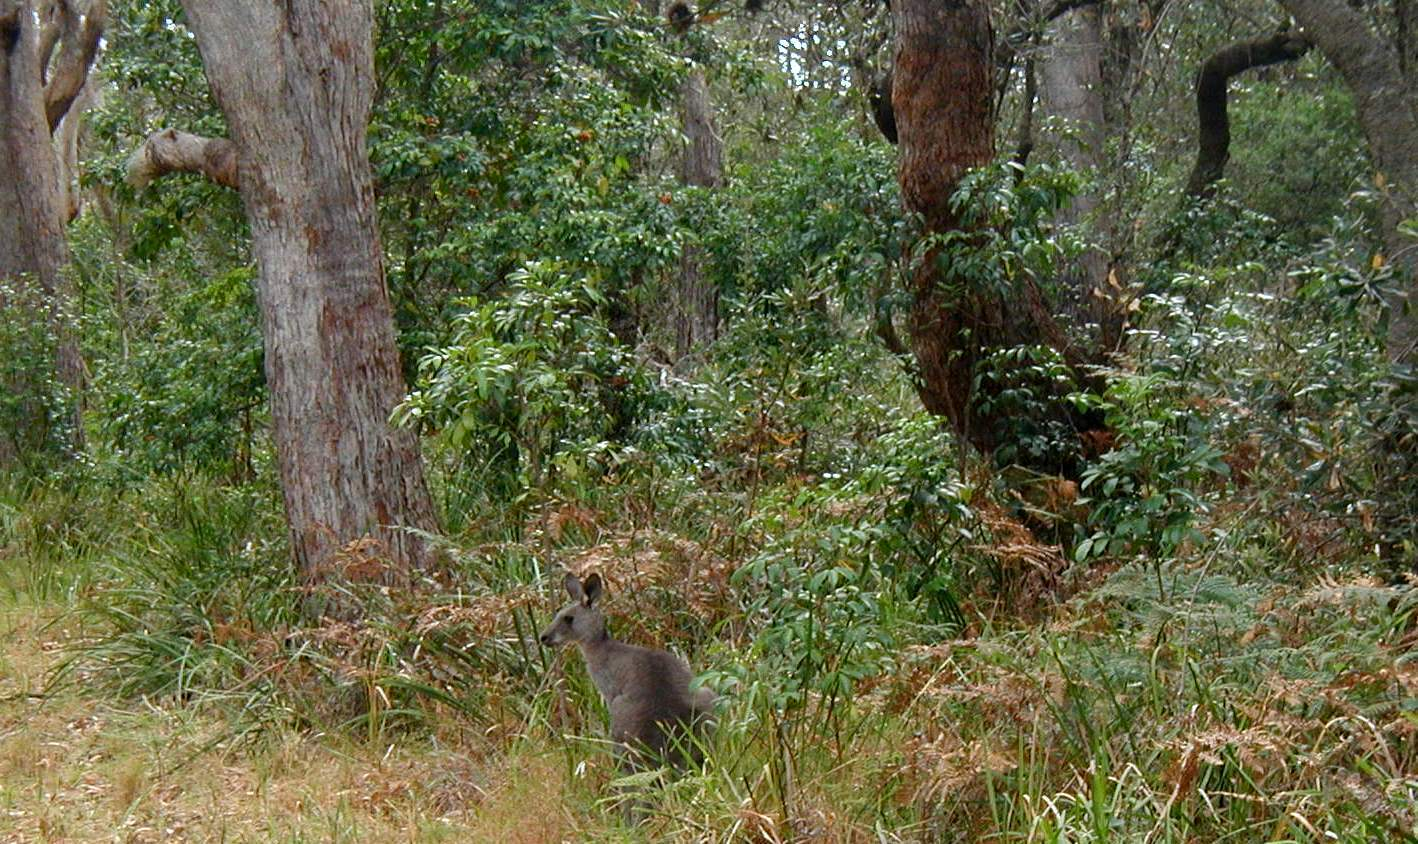 Kangaroo in a Eucalyptus forest in New South Wales, Australia. Not necessarily the first animal you associate with forest, but it's important to consider that the canopy density of more open dry forests (could be 25-50% cover) will differ from that of closed-canopy wet forests, which could reach 100% cover.